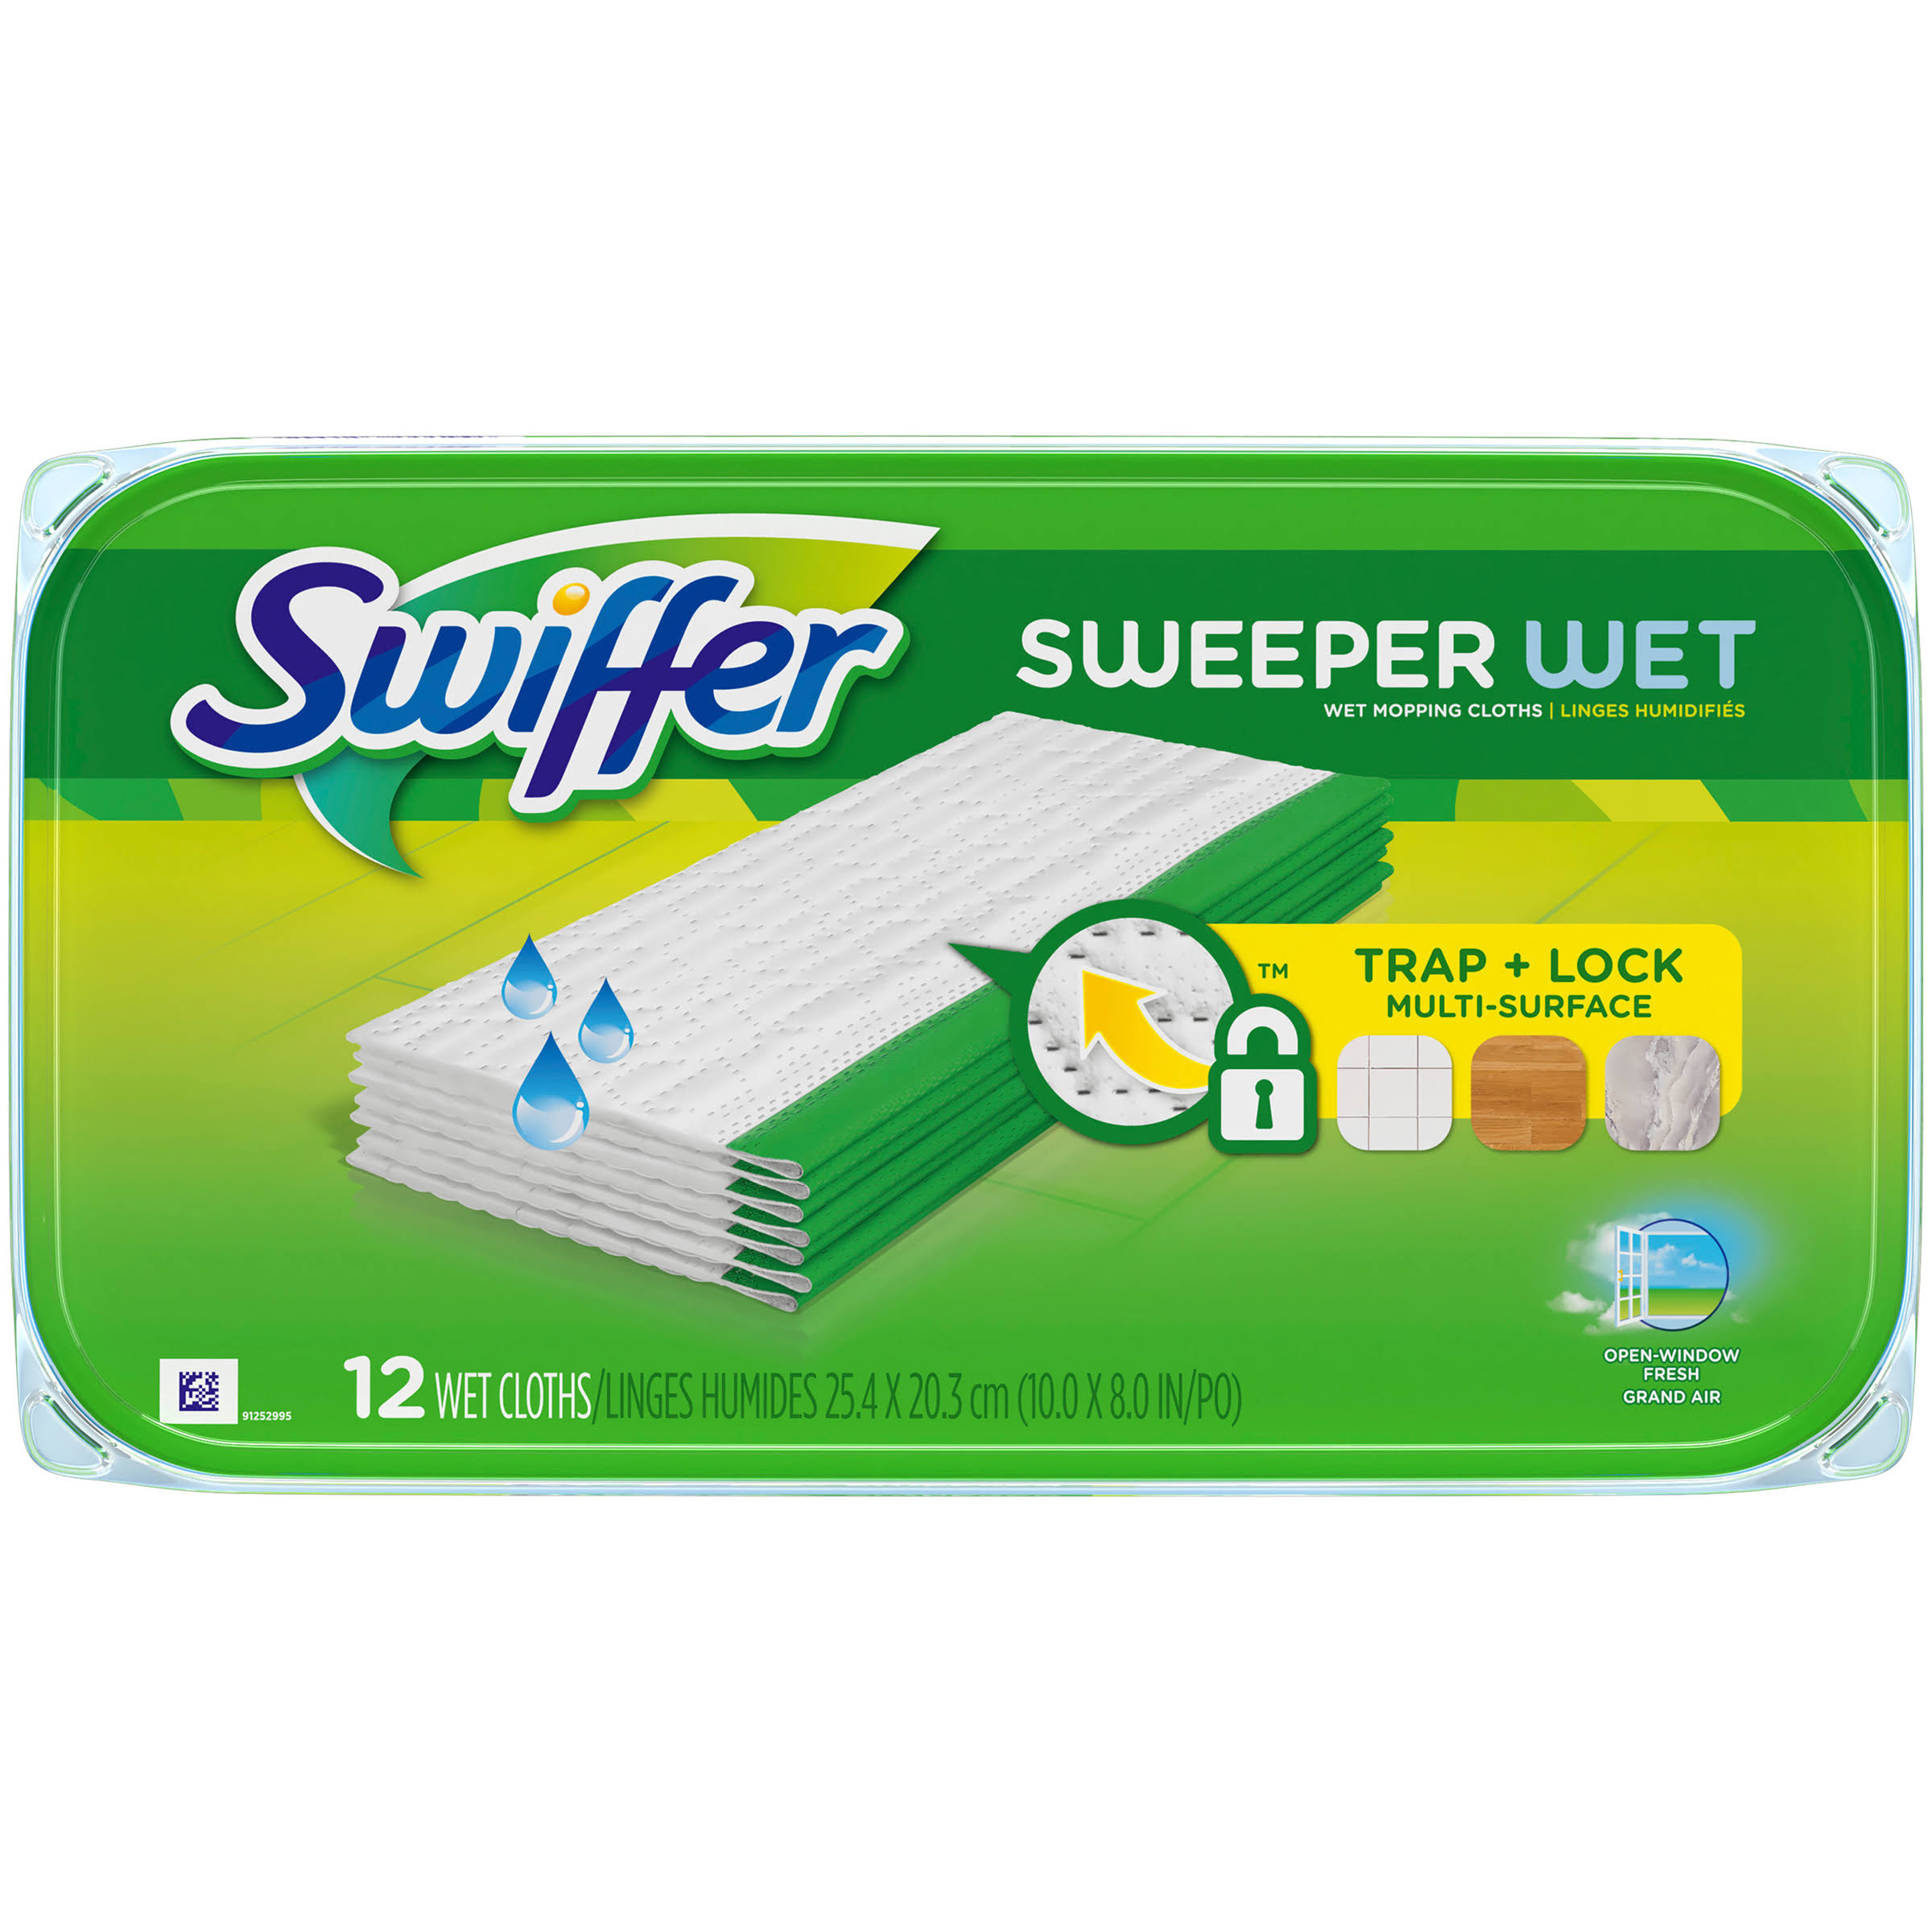 Swiffer Sweeper Wet Mopping Refill Cloths - 12 Pack